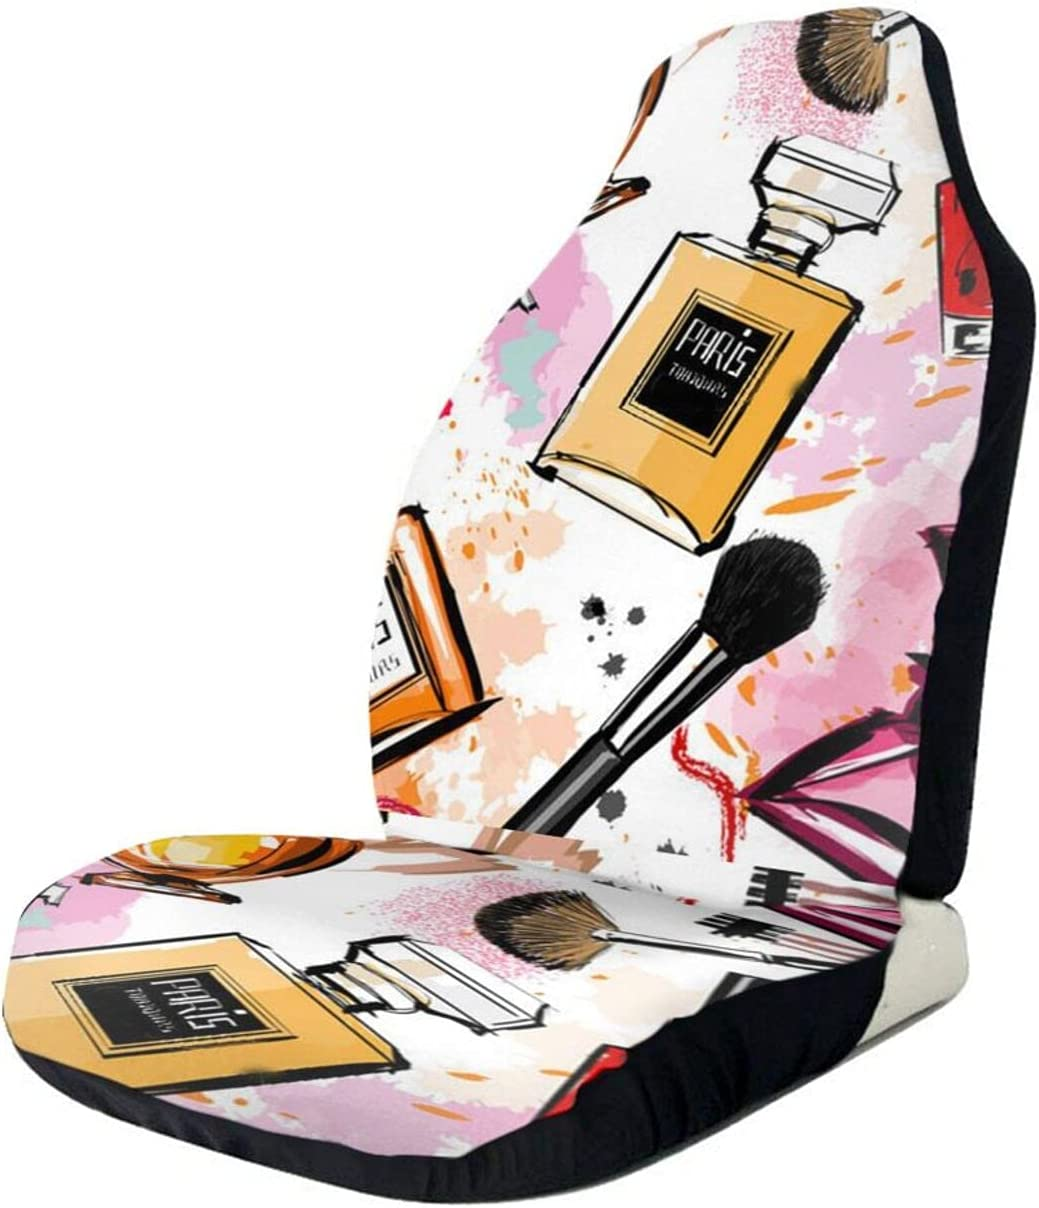 Car Classic Seat Covers Watercolor Special price Cosmetics Vehicle Pcs Co Front 1